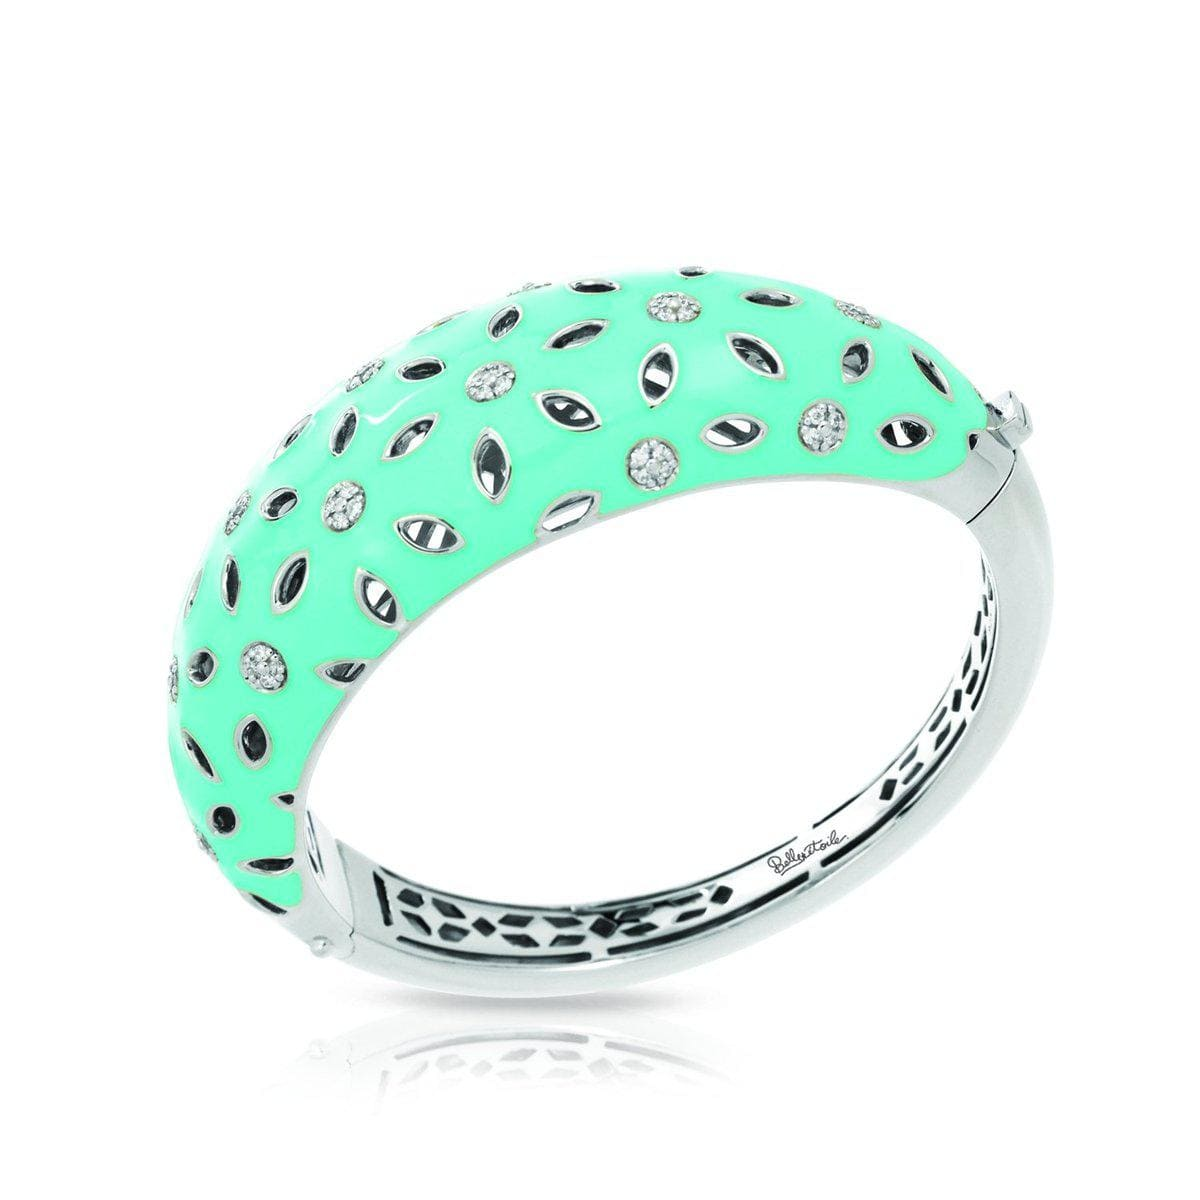 Charlotte Aqua Bangle-Belle Etoile-Renee Taylor Gallery